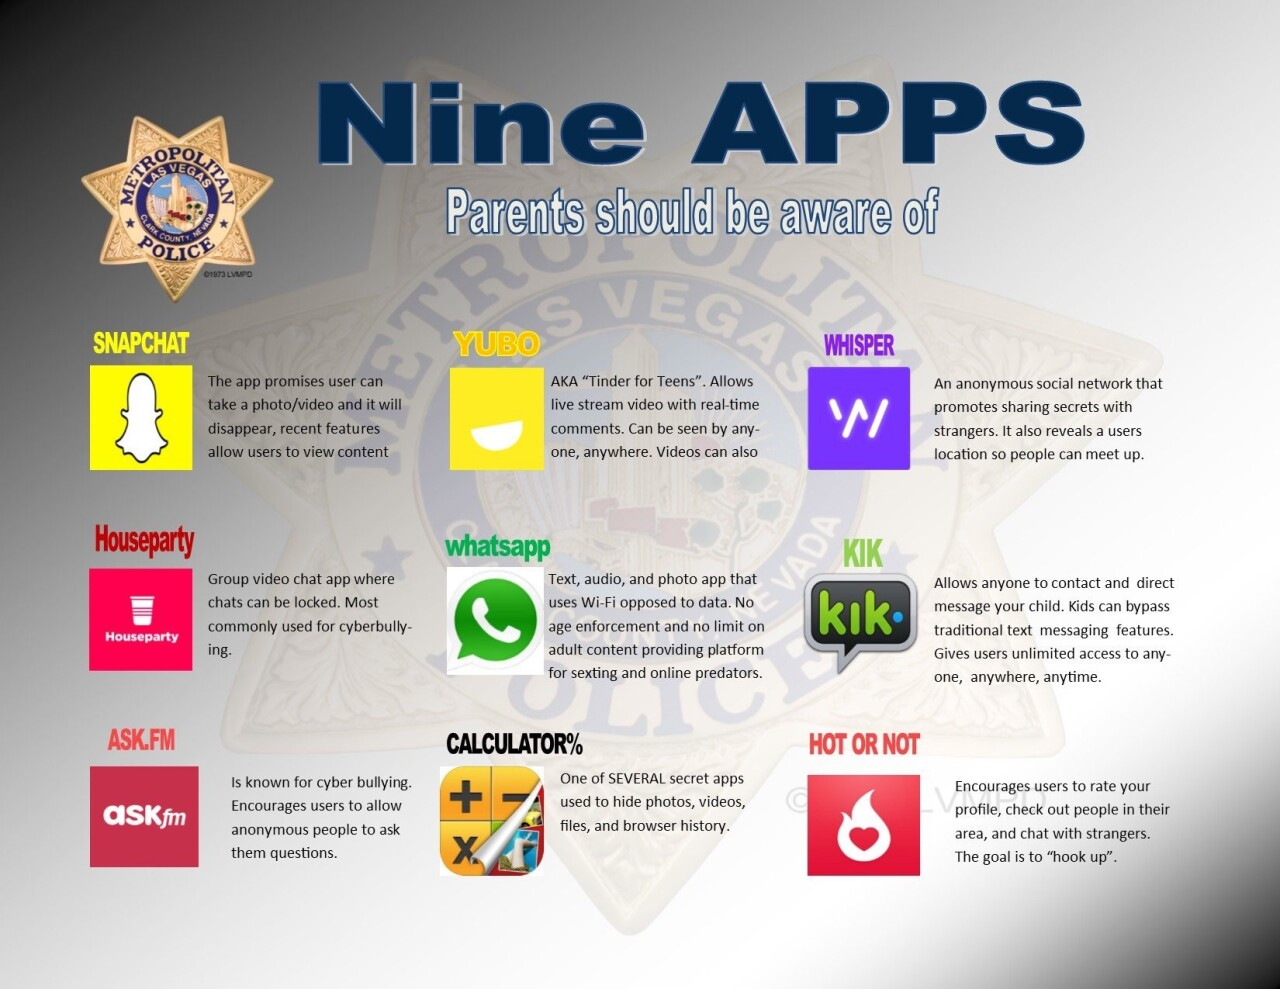 NINE APPS BETTER PIC.jpg